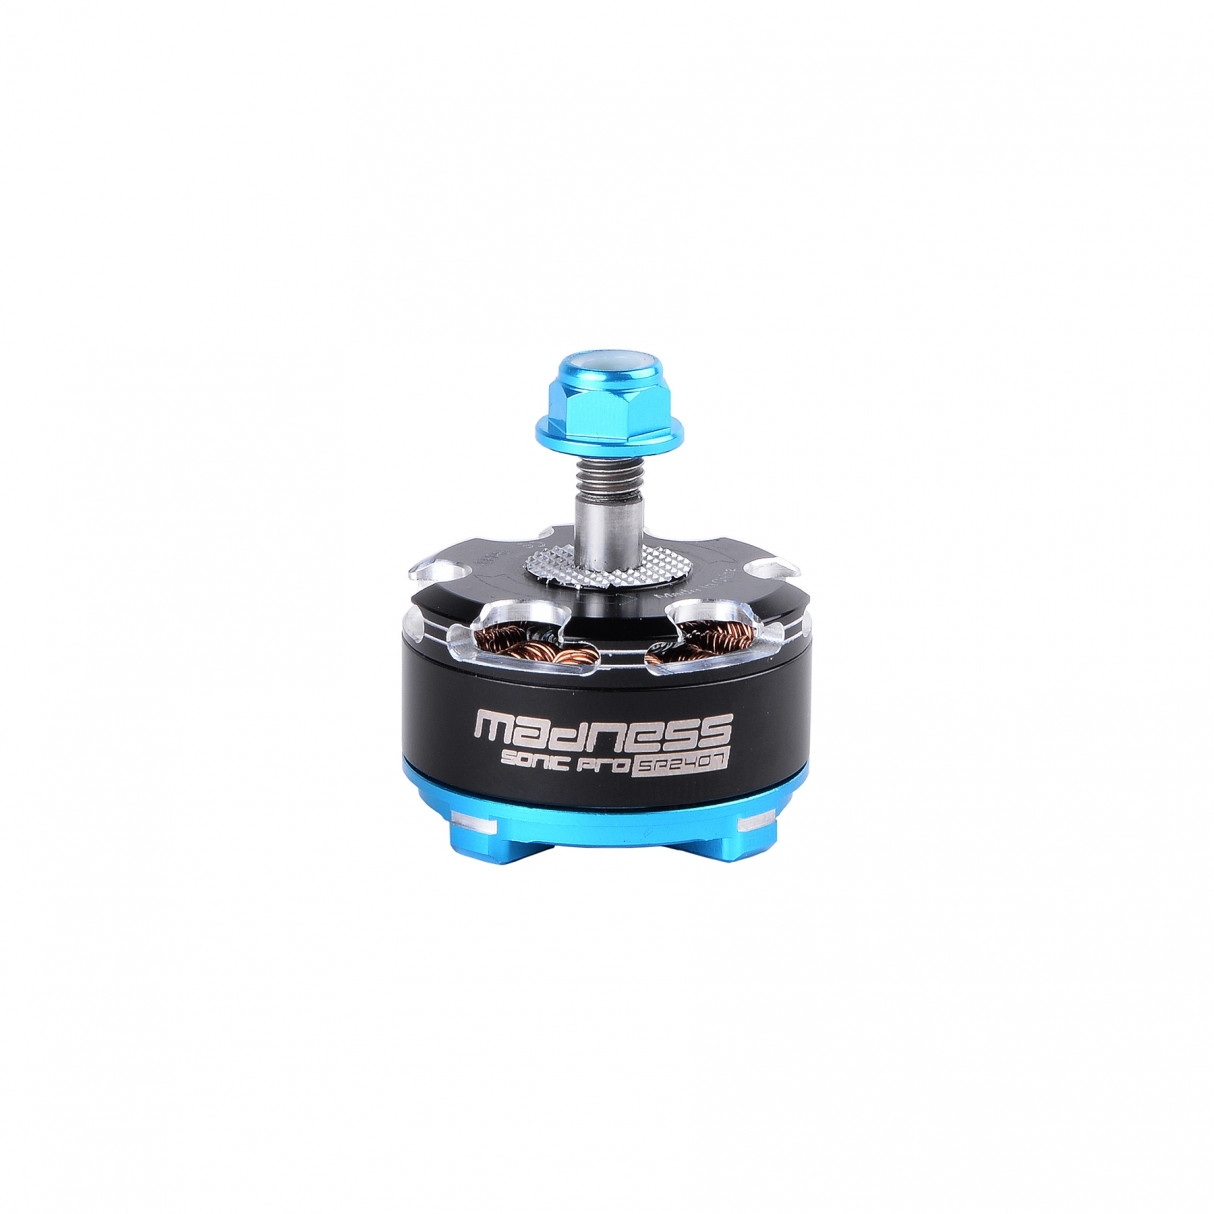 EGODRIFT MADNESS SP2407 2407 2450KV 4-6S Brushless Motor for RC Drone FPV Racing